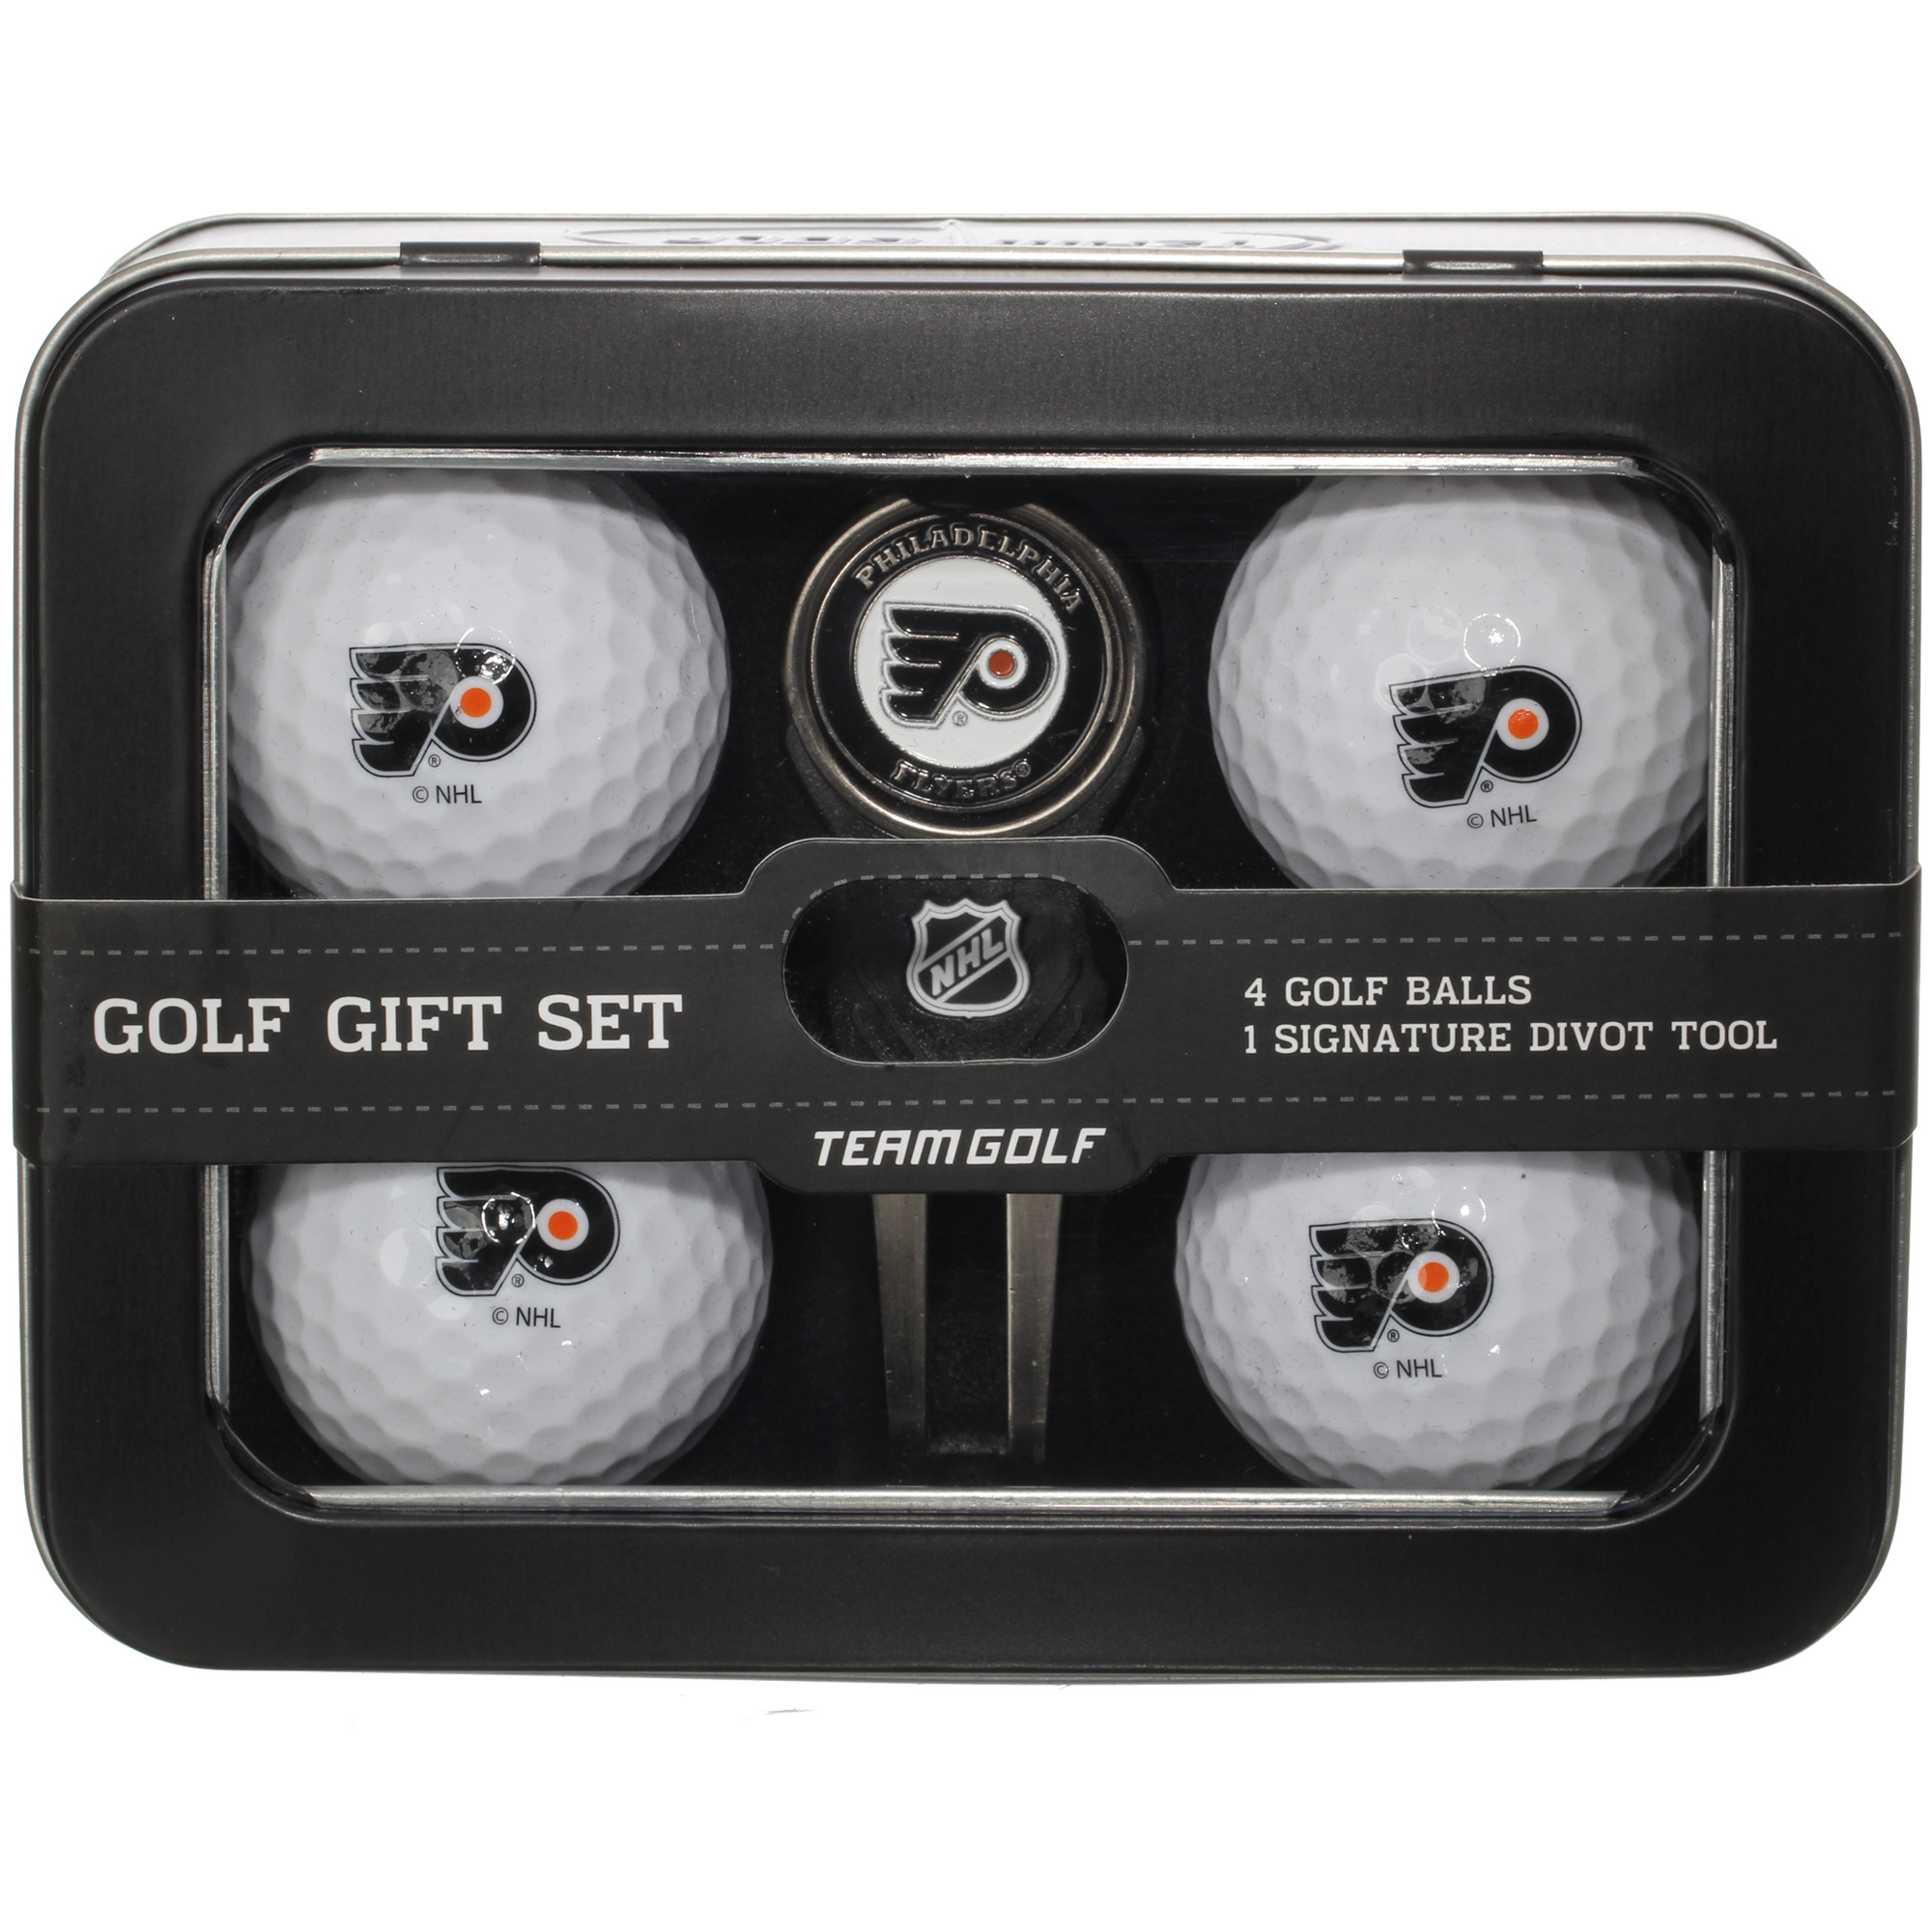 Philadelphia Flyers 2016 4 Golf Ball and Divot Tool Set - No Size